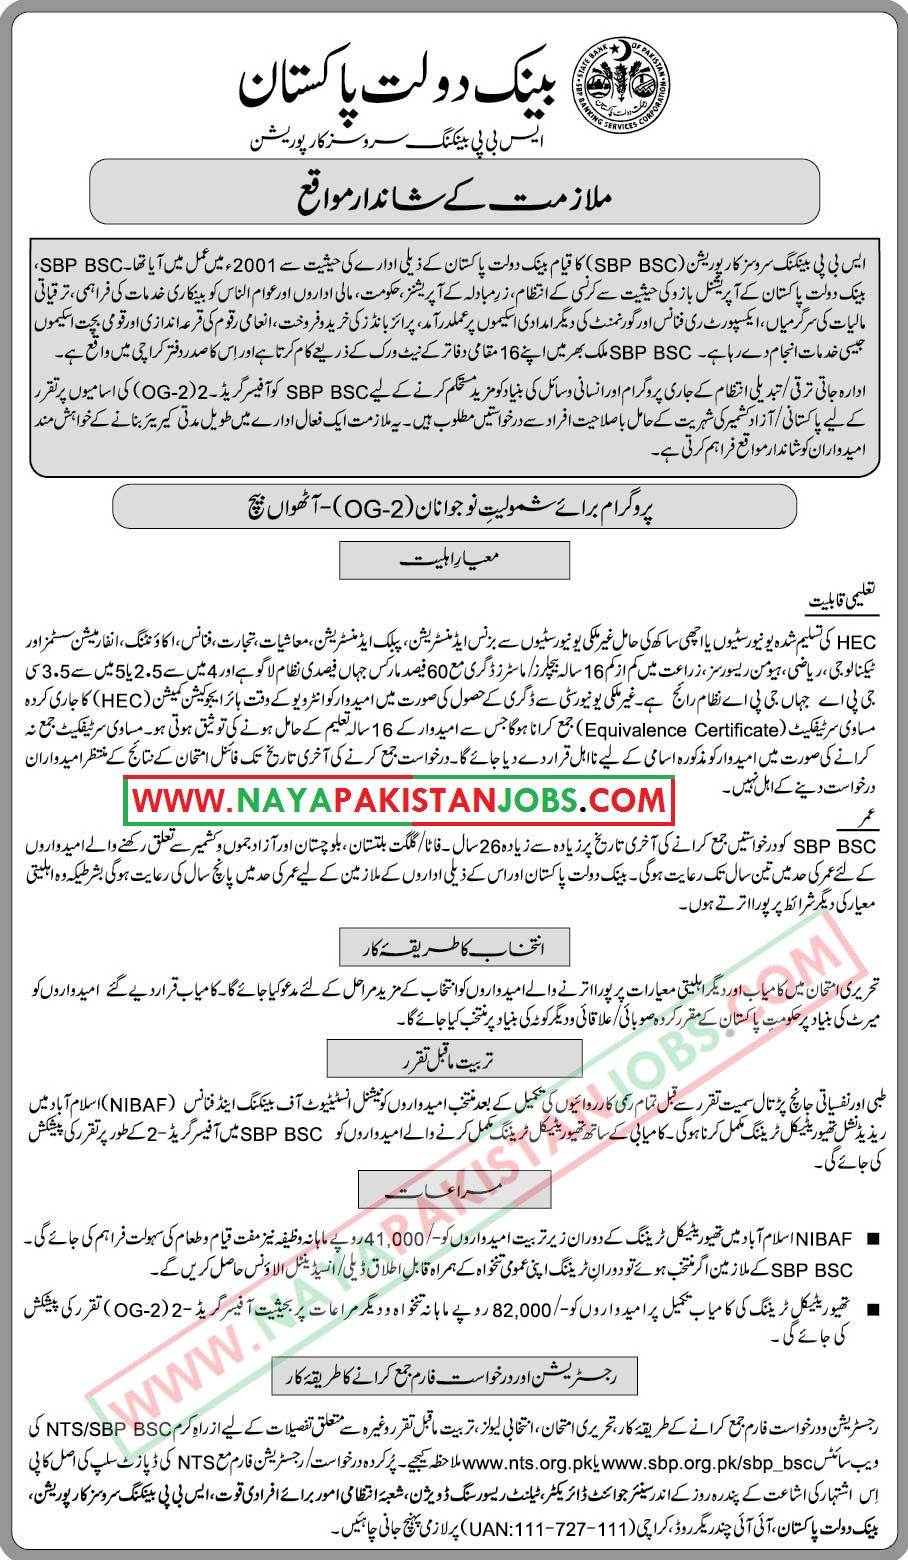 State Bank of Pkaistan sbp jobs, SBP Young Professionals Induction Program (OG-2) | State Bank Jobs 2019